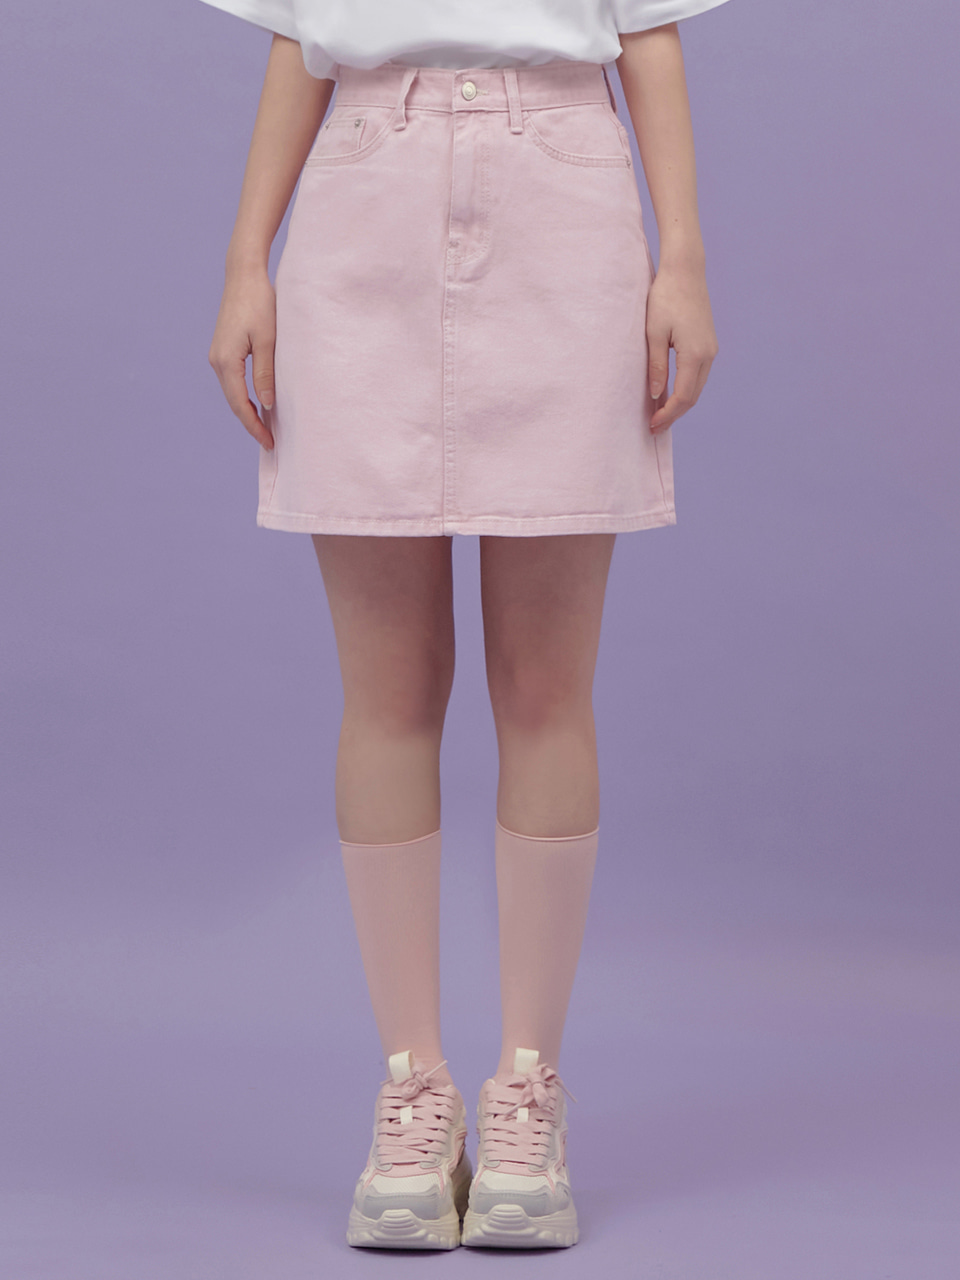 [NEW 30%]핑크 데님 스커트 PINK DENIM SKIRT / PINK